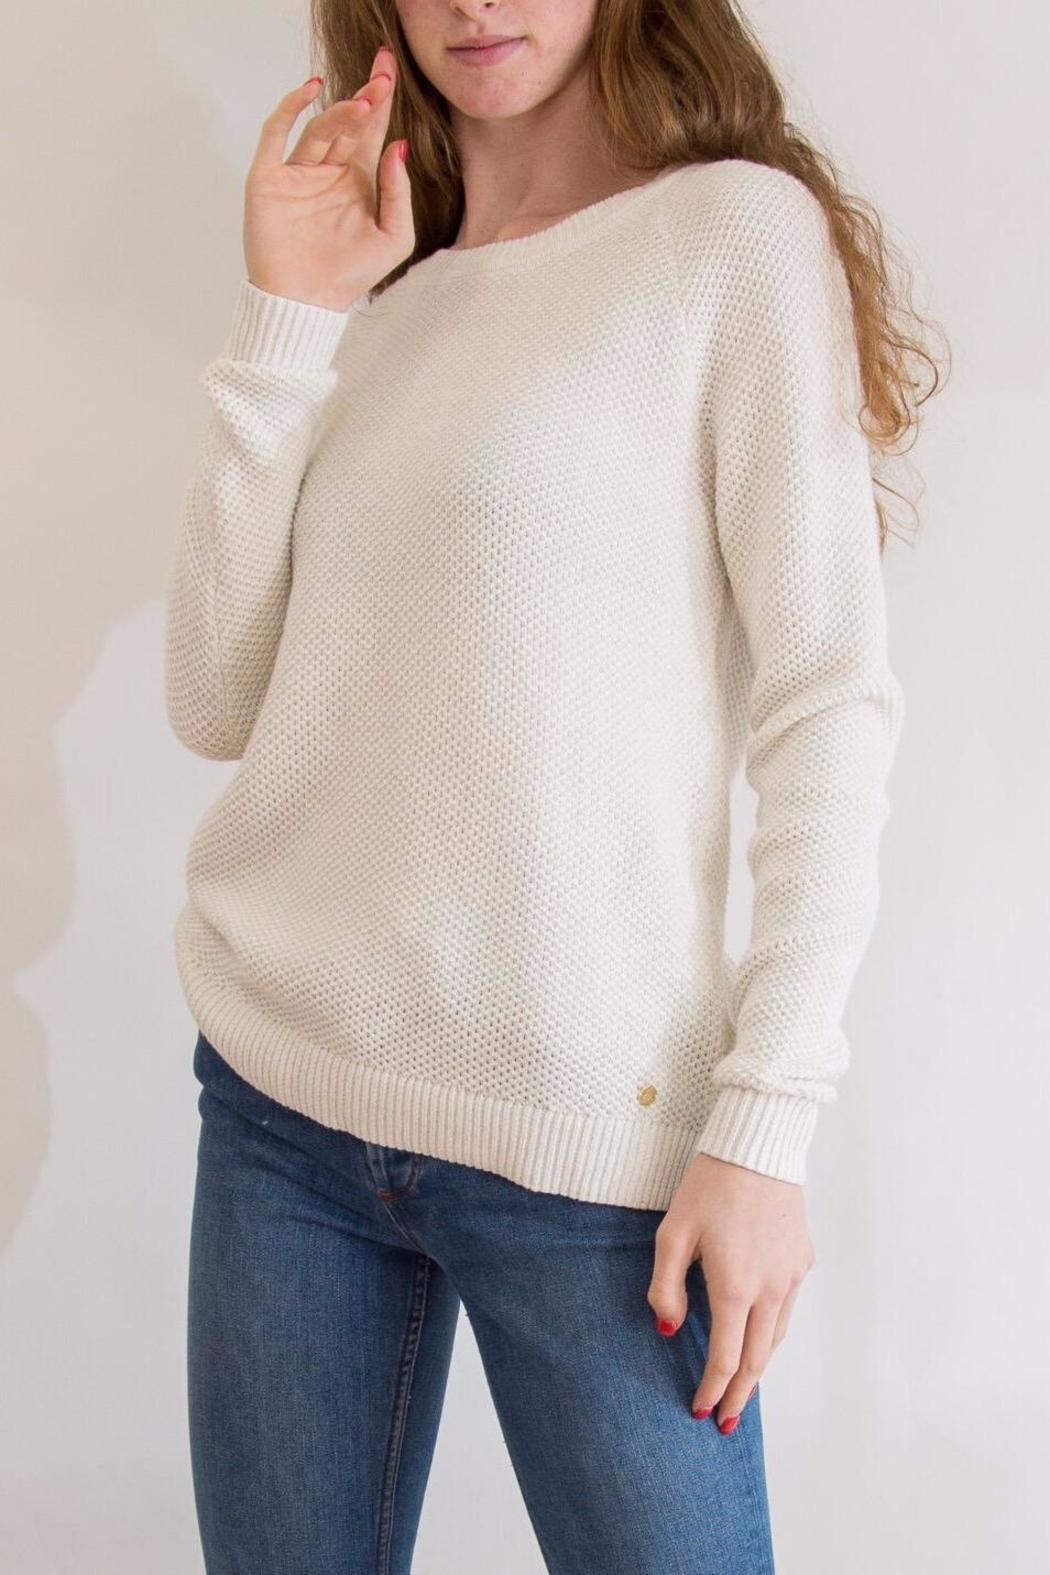 Southern Tide Gold Flecked Crewneck - Front Full Image